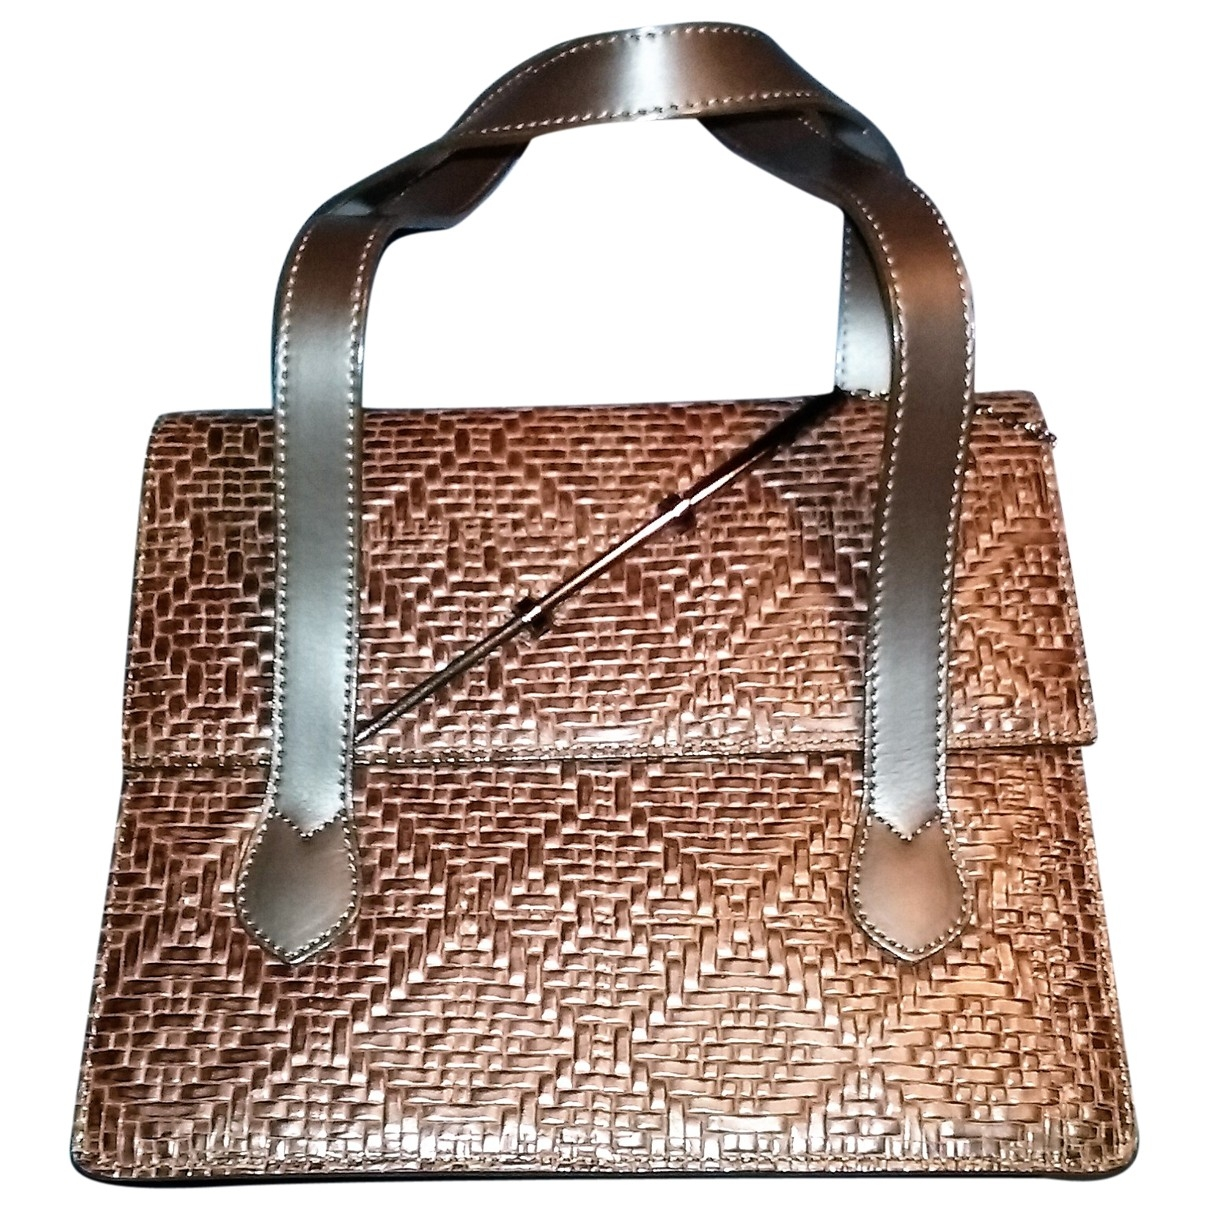 Kenzo \N Brown Leather handbag for Women \N